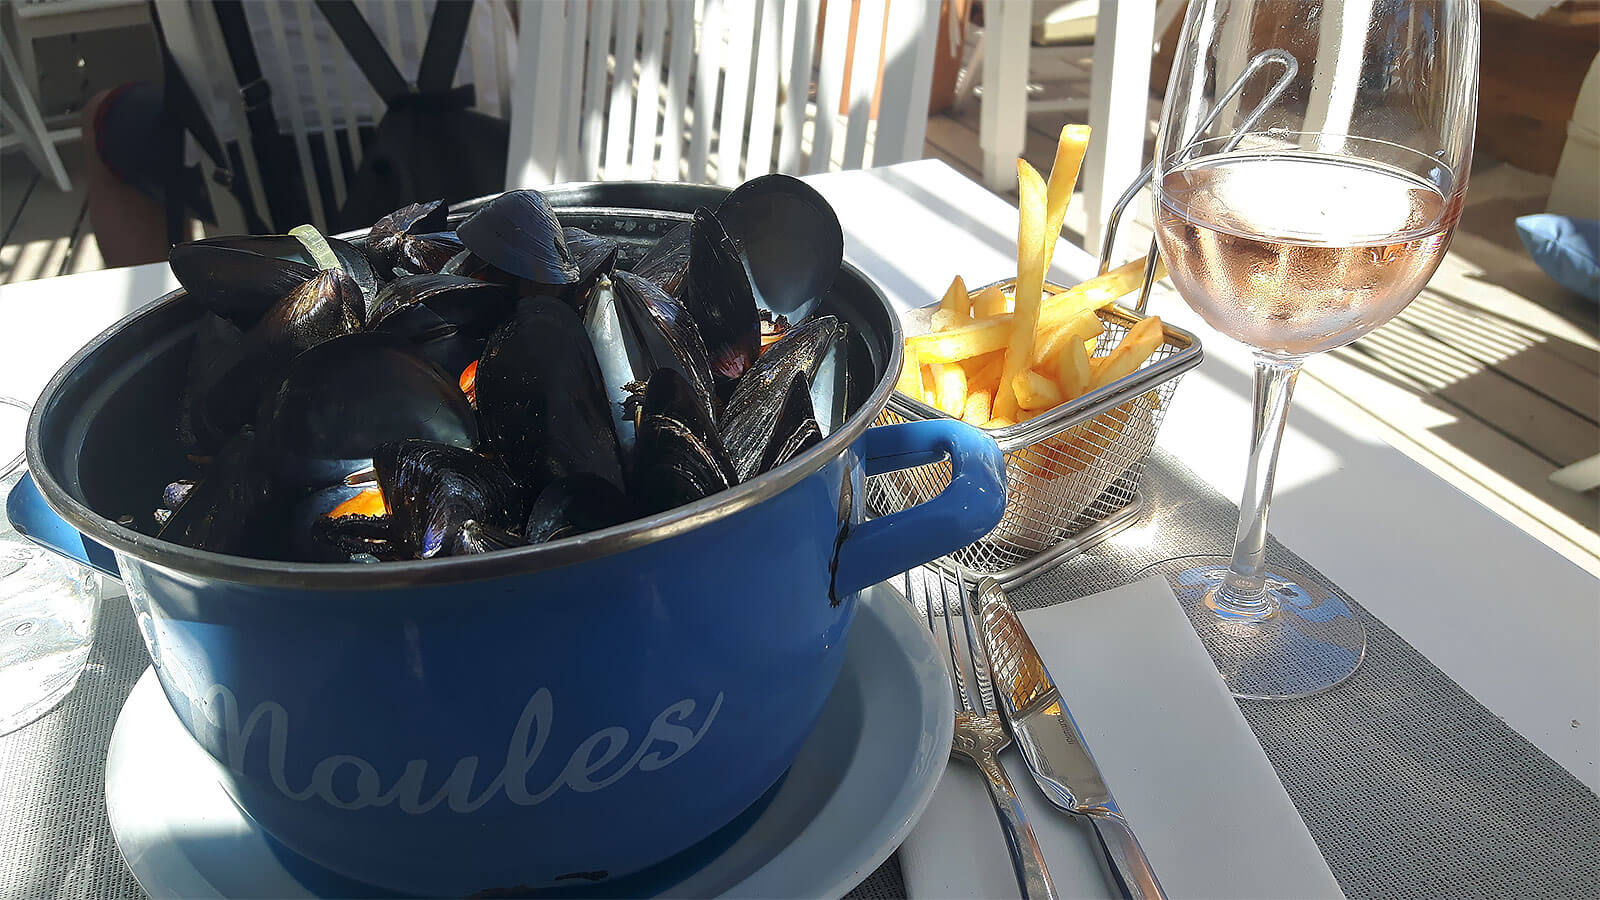 Moules frites at La Ola, Sète